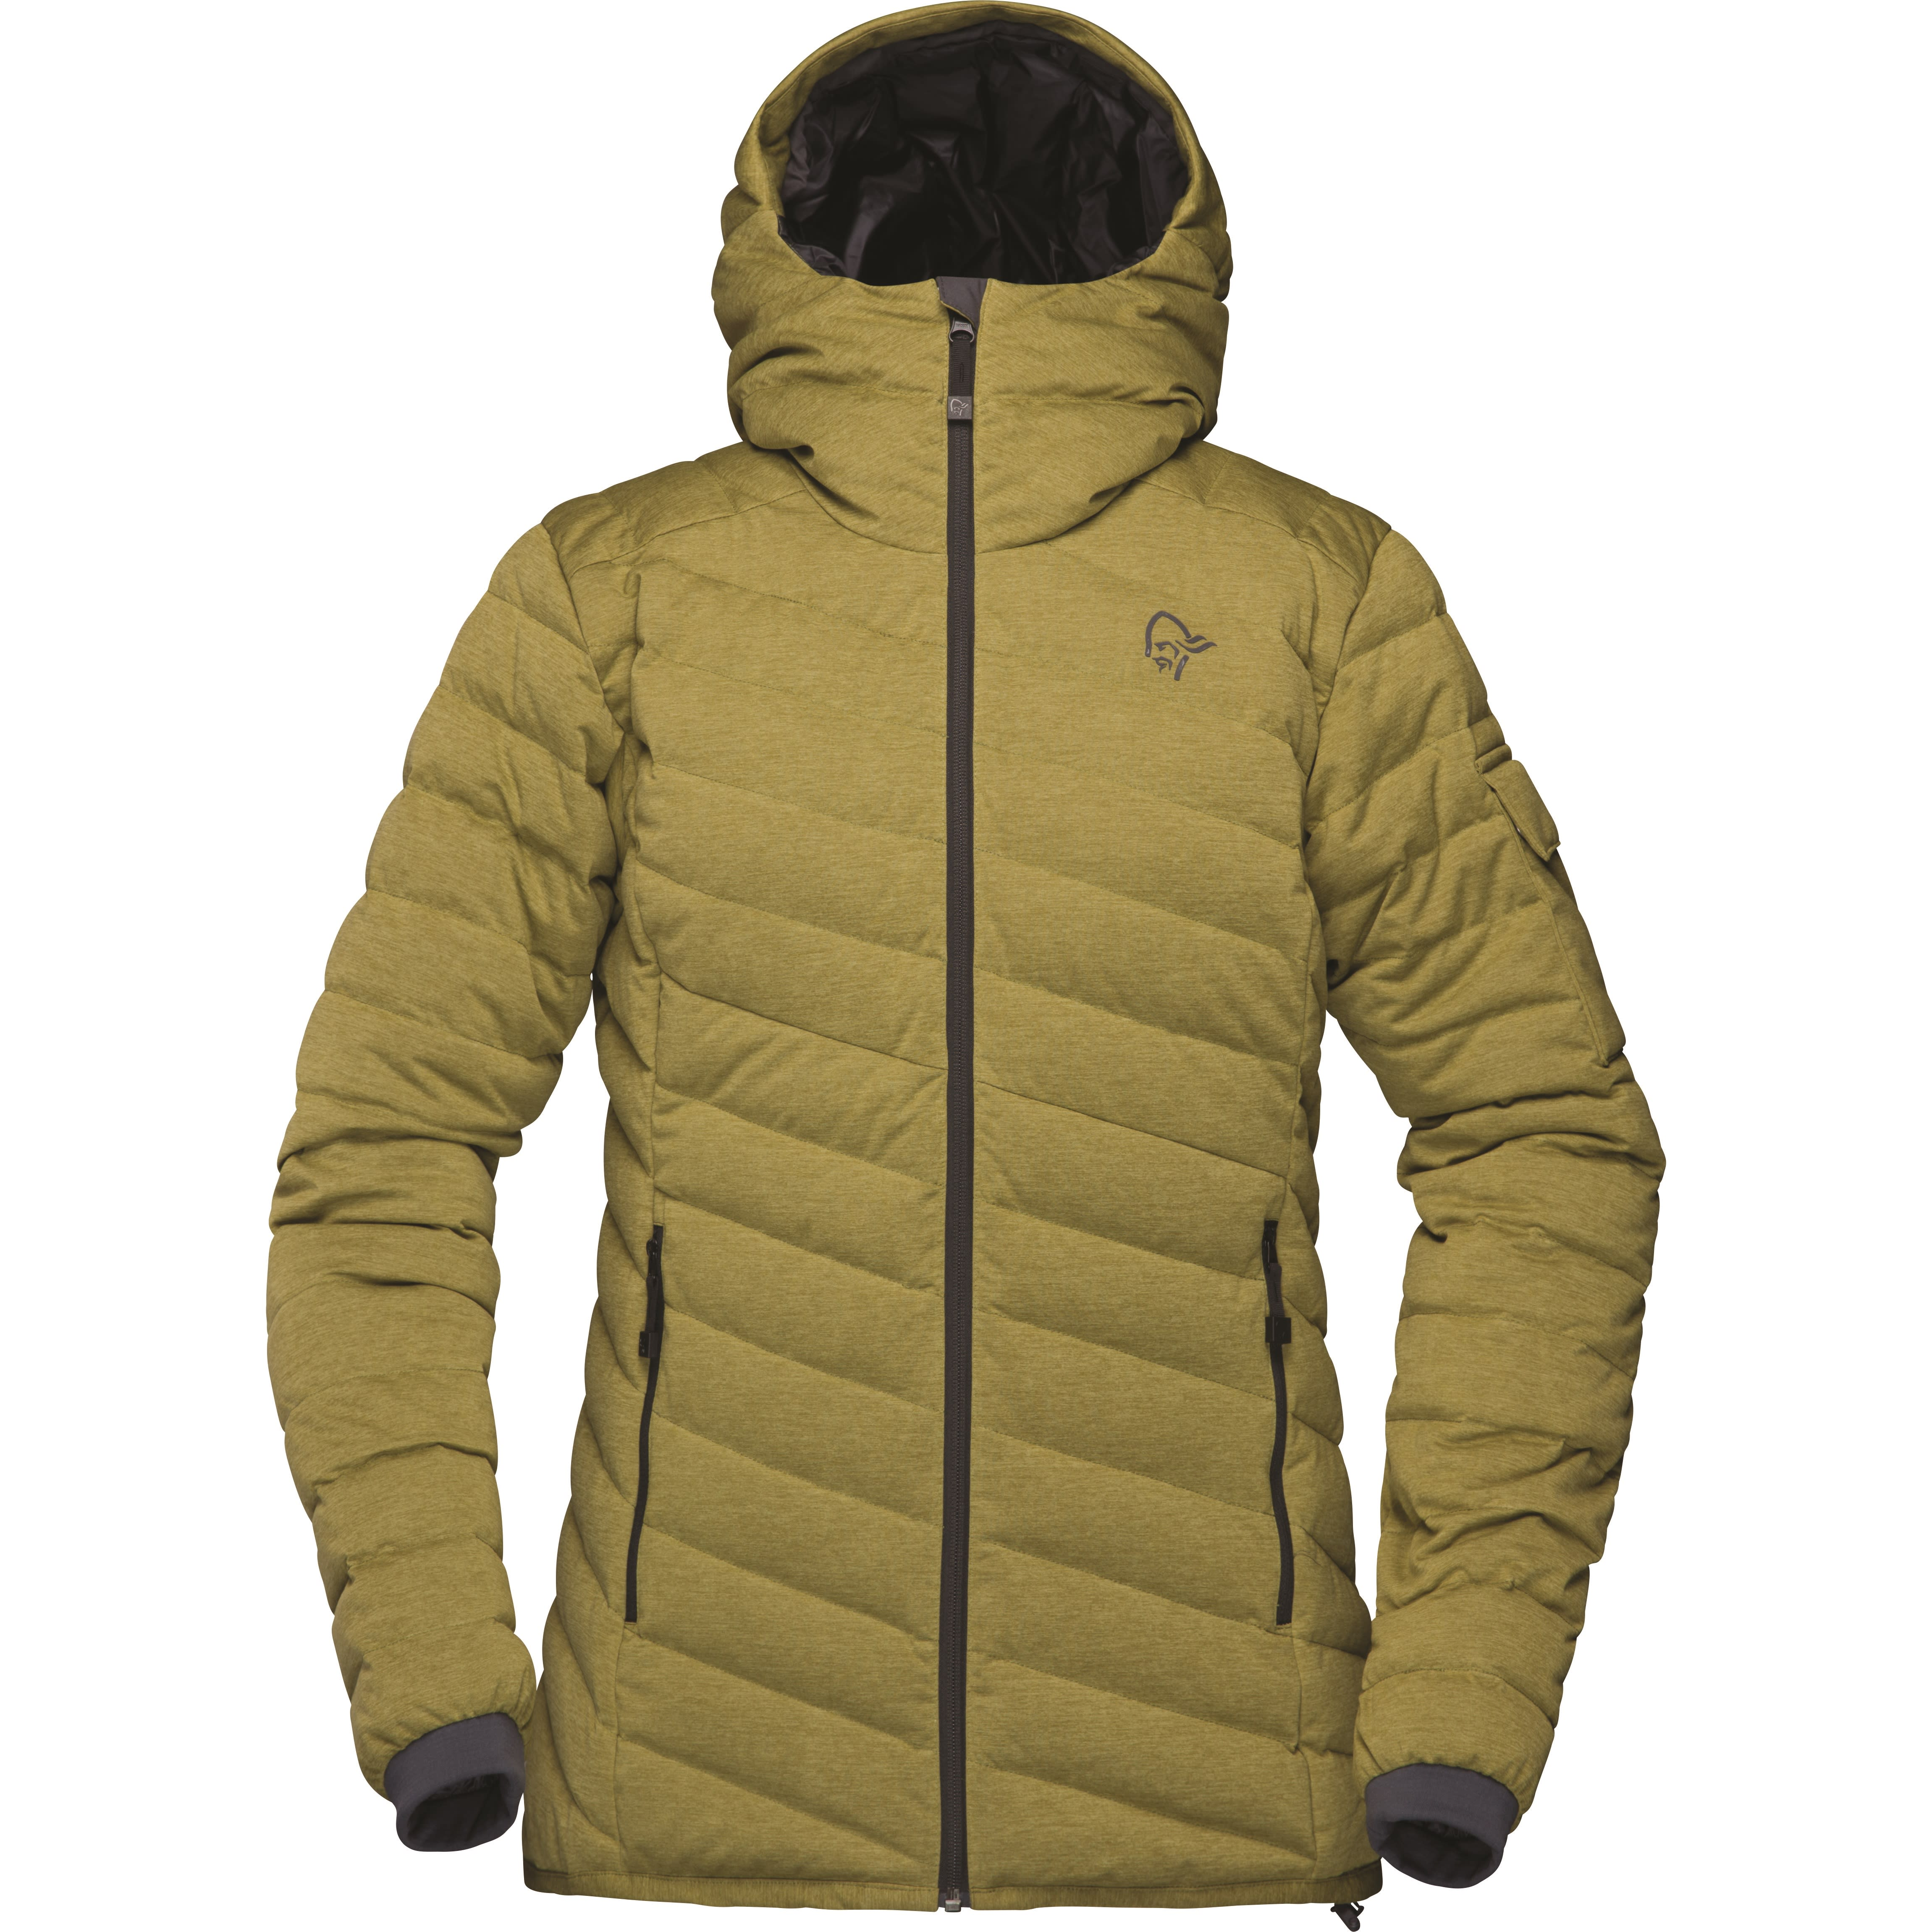 Tamok Light Down750 Jacket Women, Norrøna